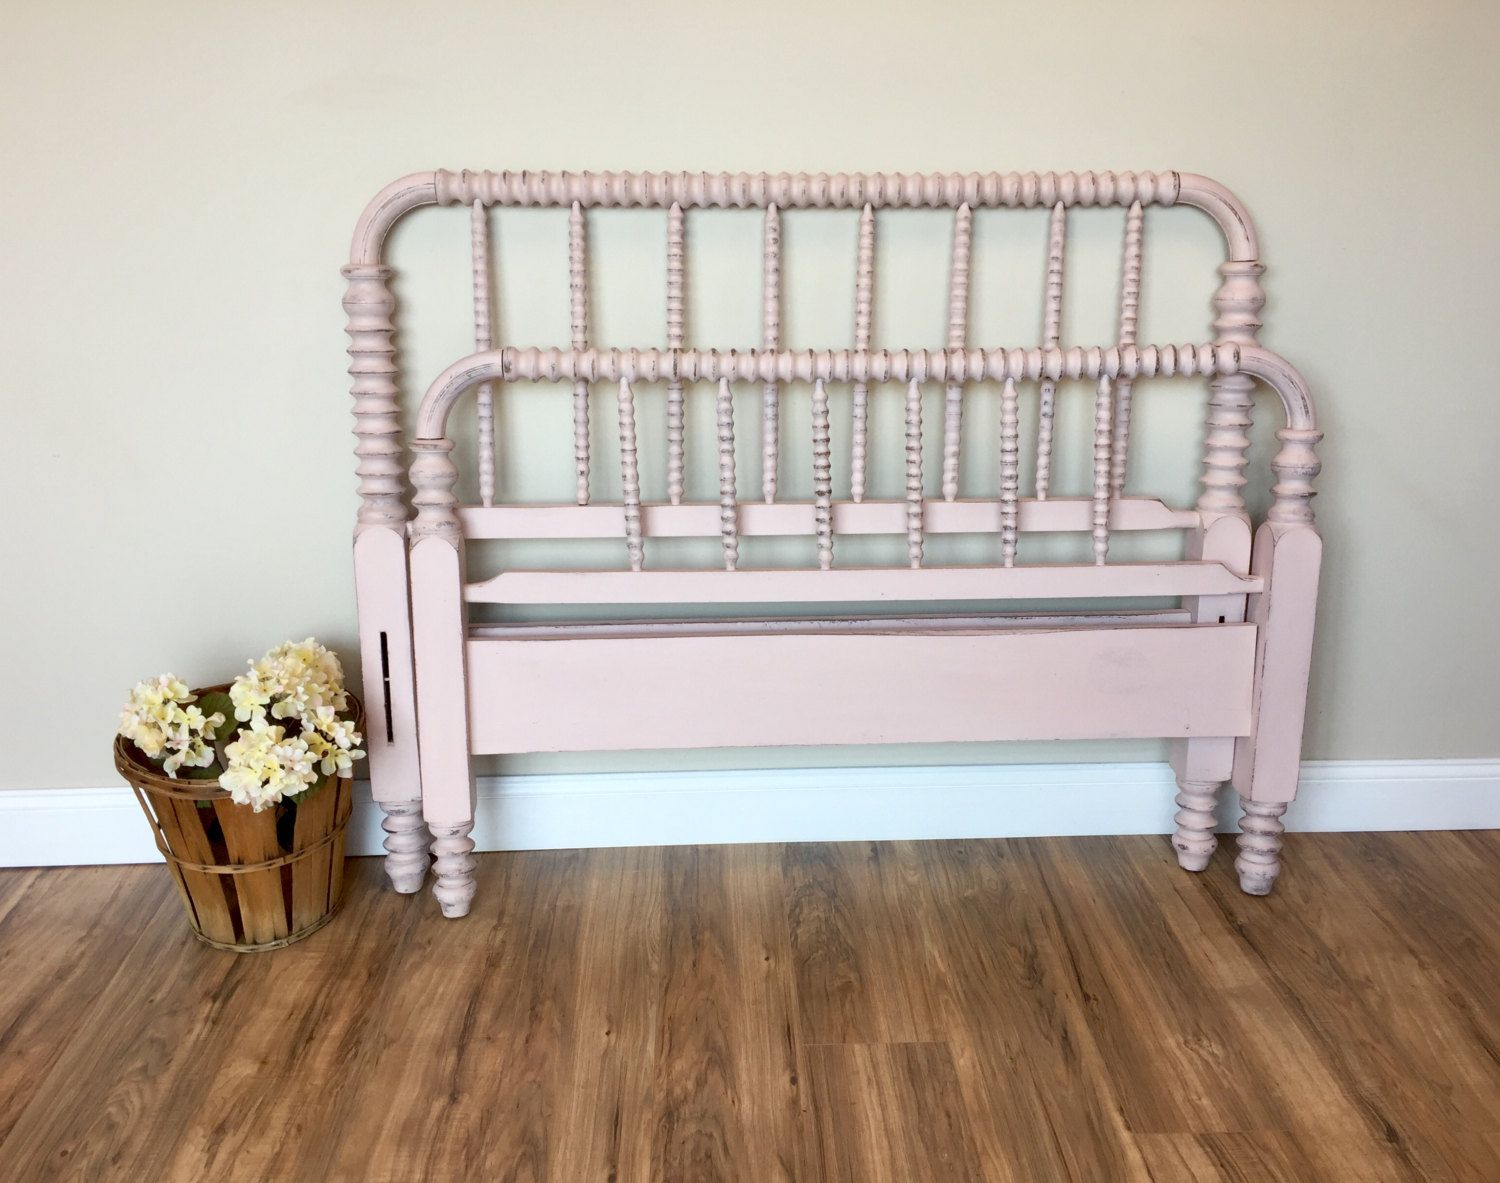 Jenny Lind Bed Three Quarter Bed Pink Bed Frame Antique Bed Frame Spindle Bed Spool Bed Jenny Lind Bed White Toddler Bed Spool Bed